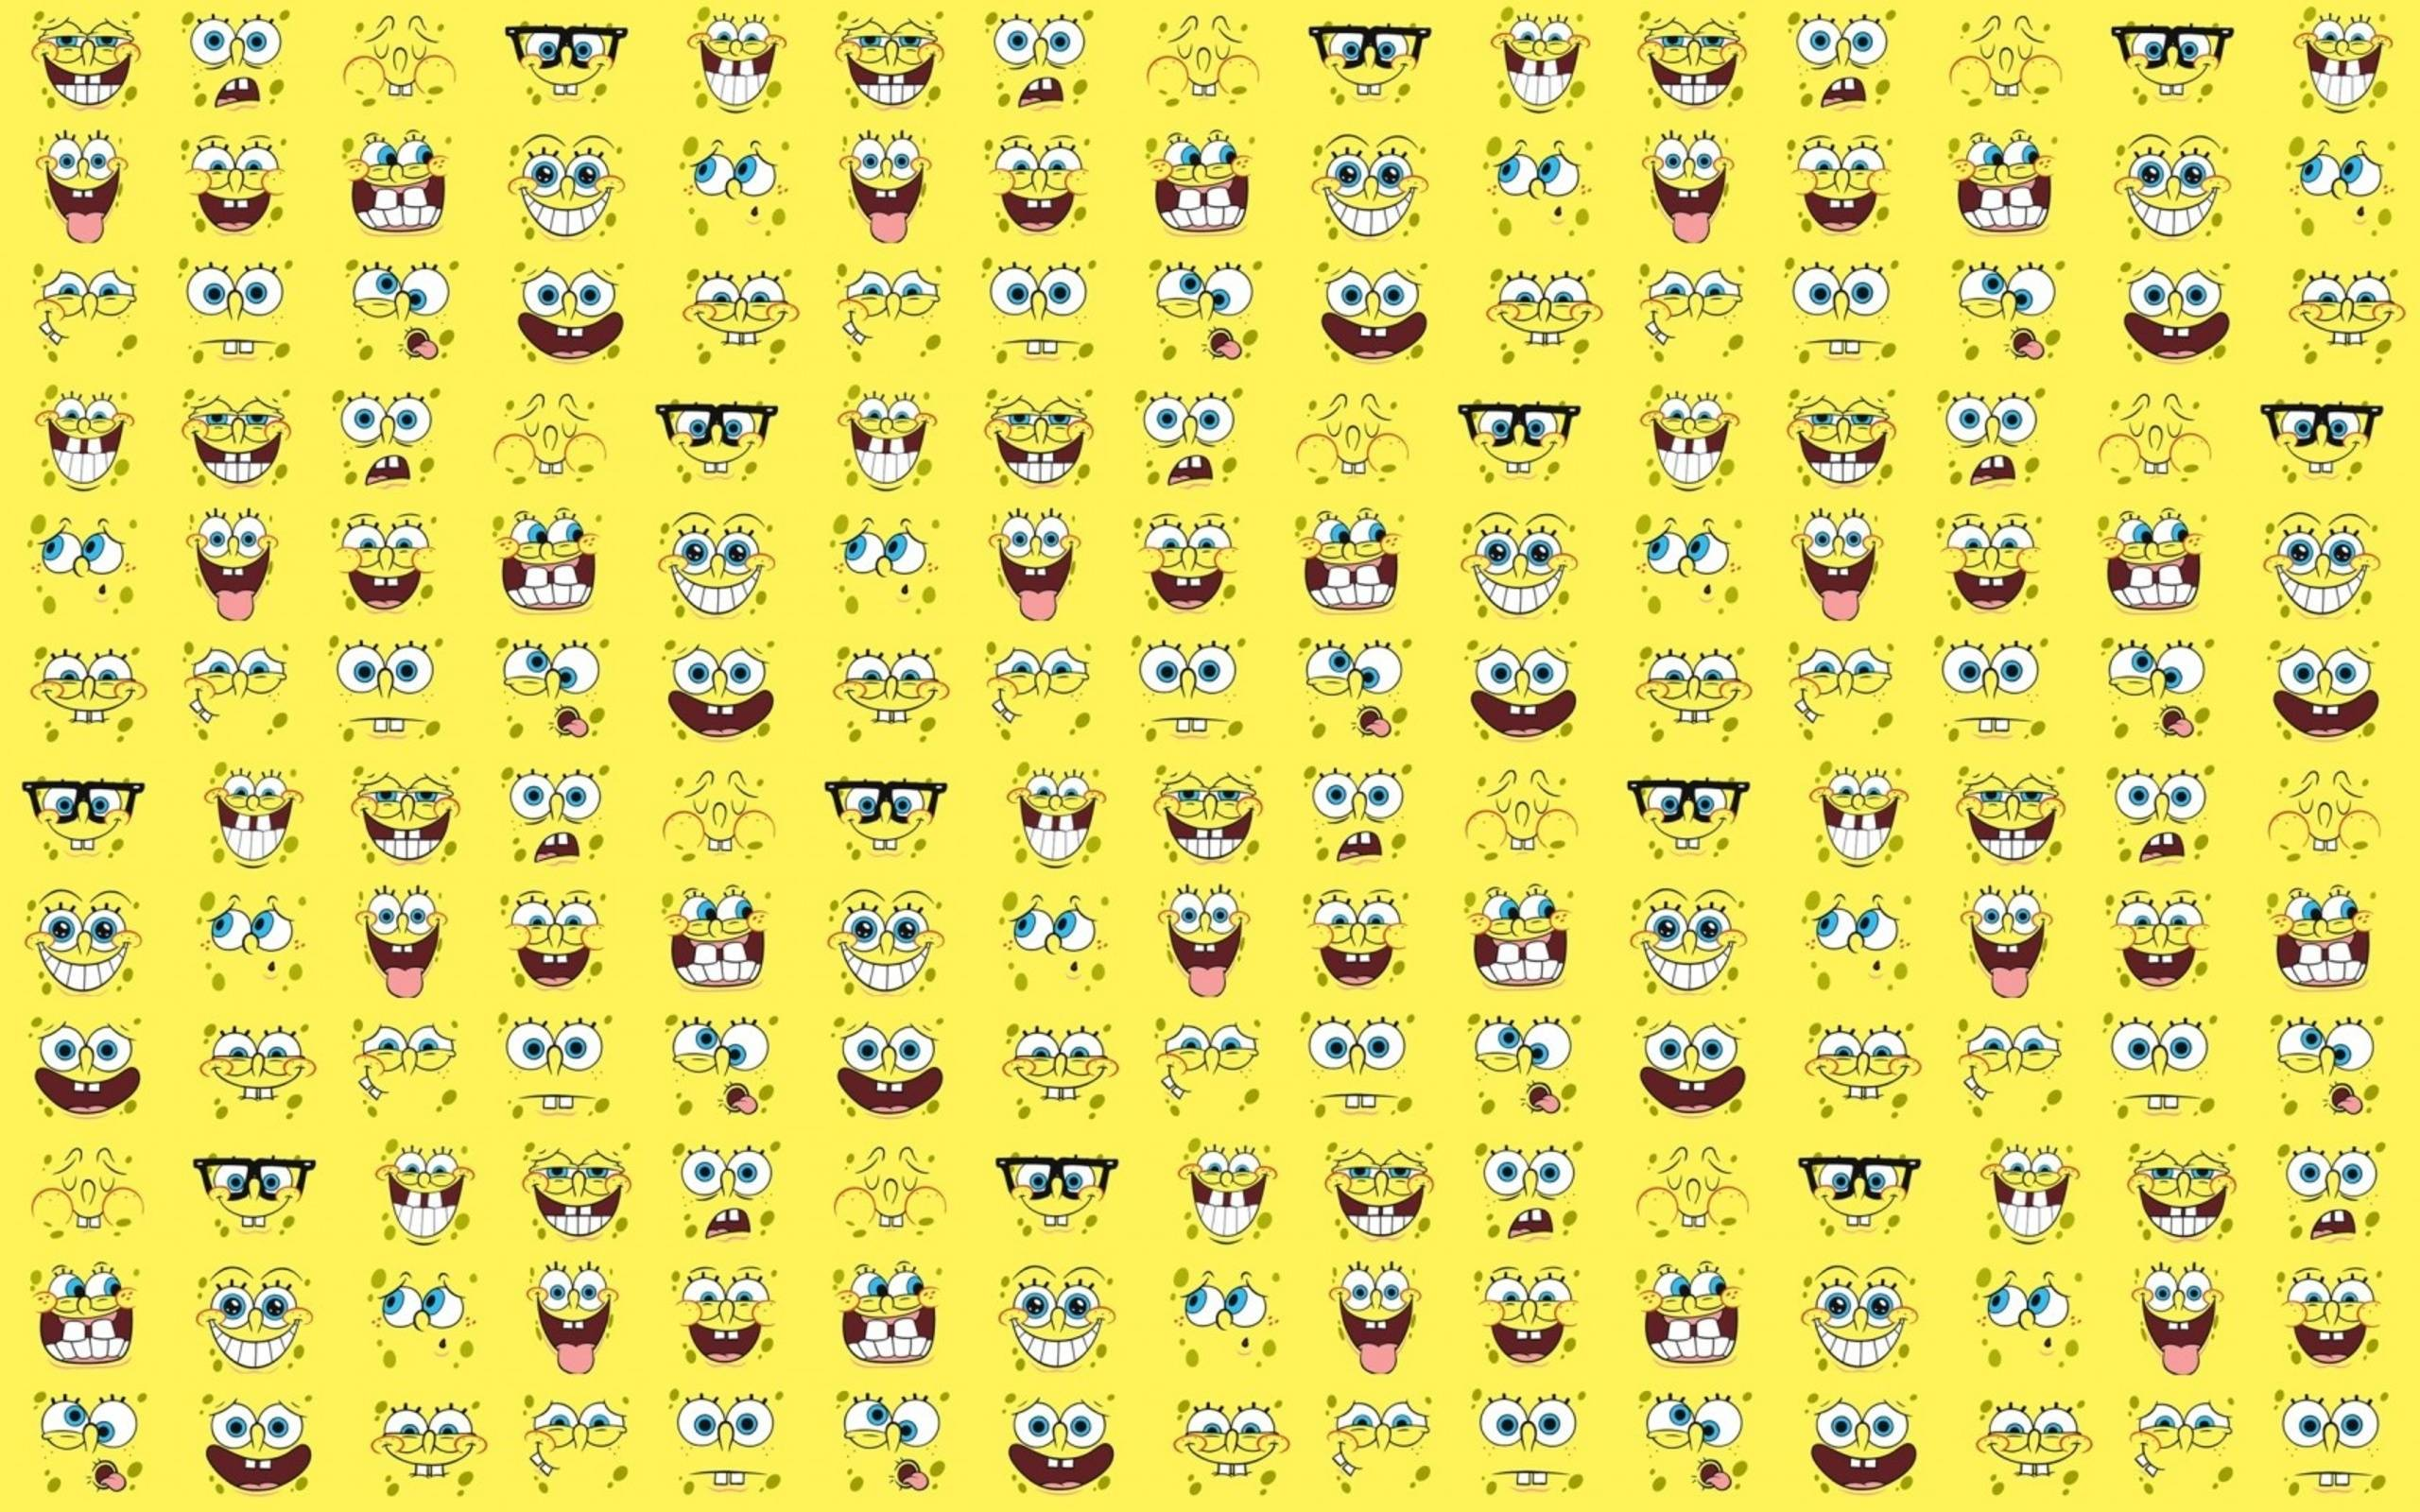 spongebob desktop wallpaper - www.